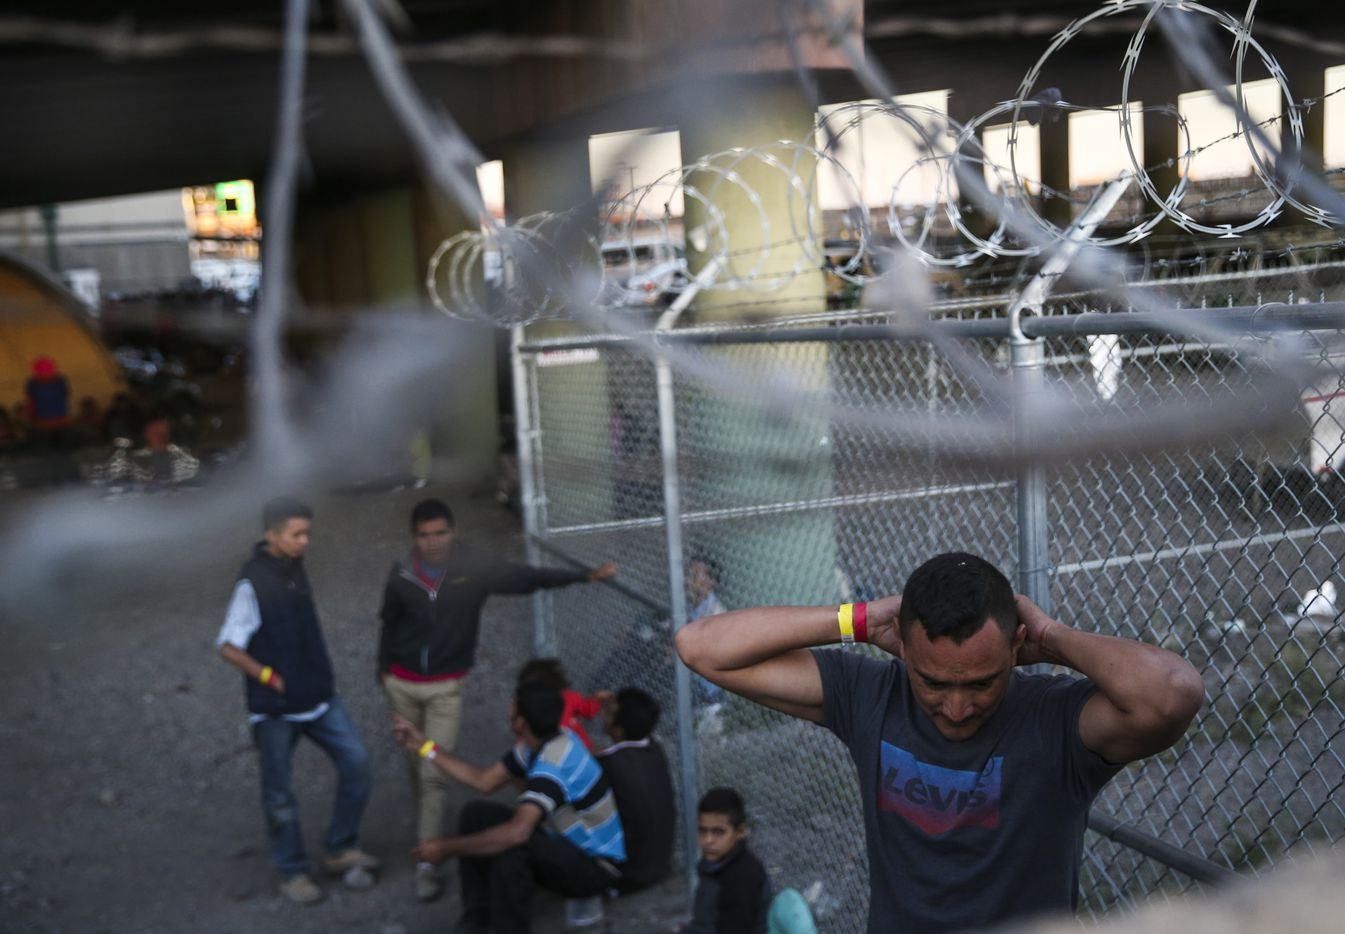 Migrants, including young children and babies, at the U.S. Border Patrol temporary holding area under the Paso Del Norte bridge in El Paso, Texas, on Friday, March 29, 2019.